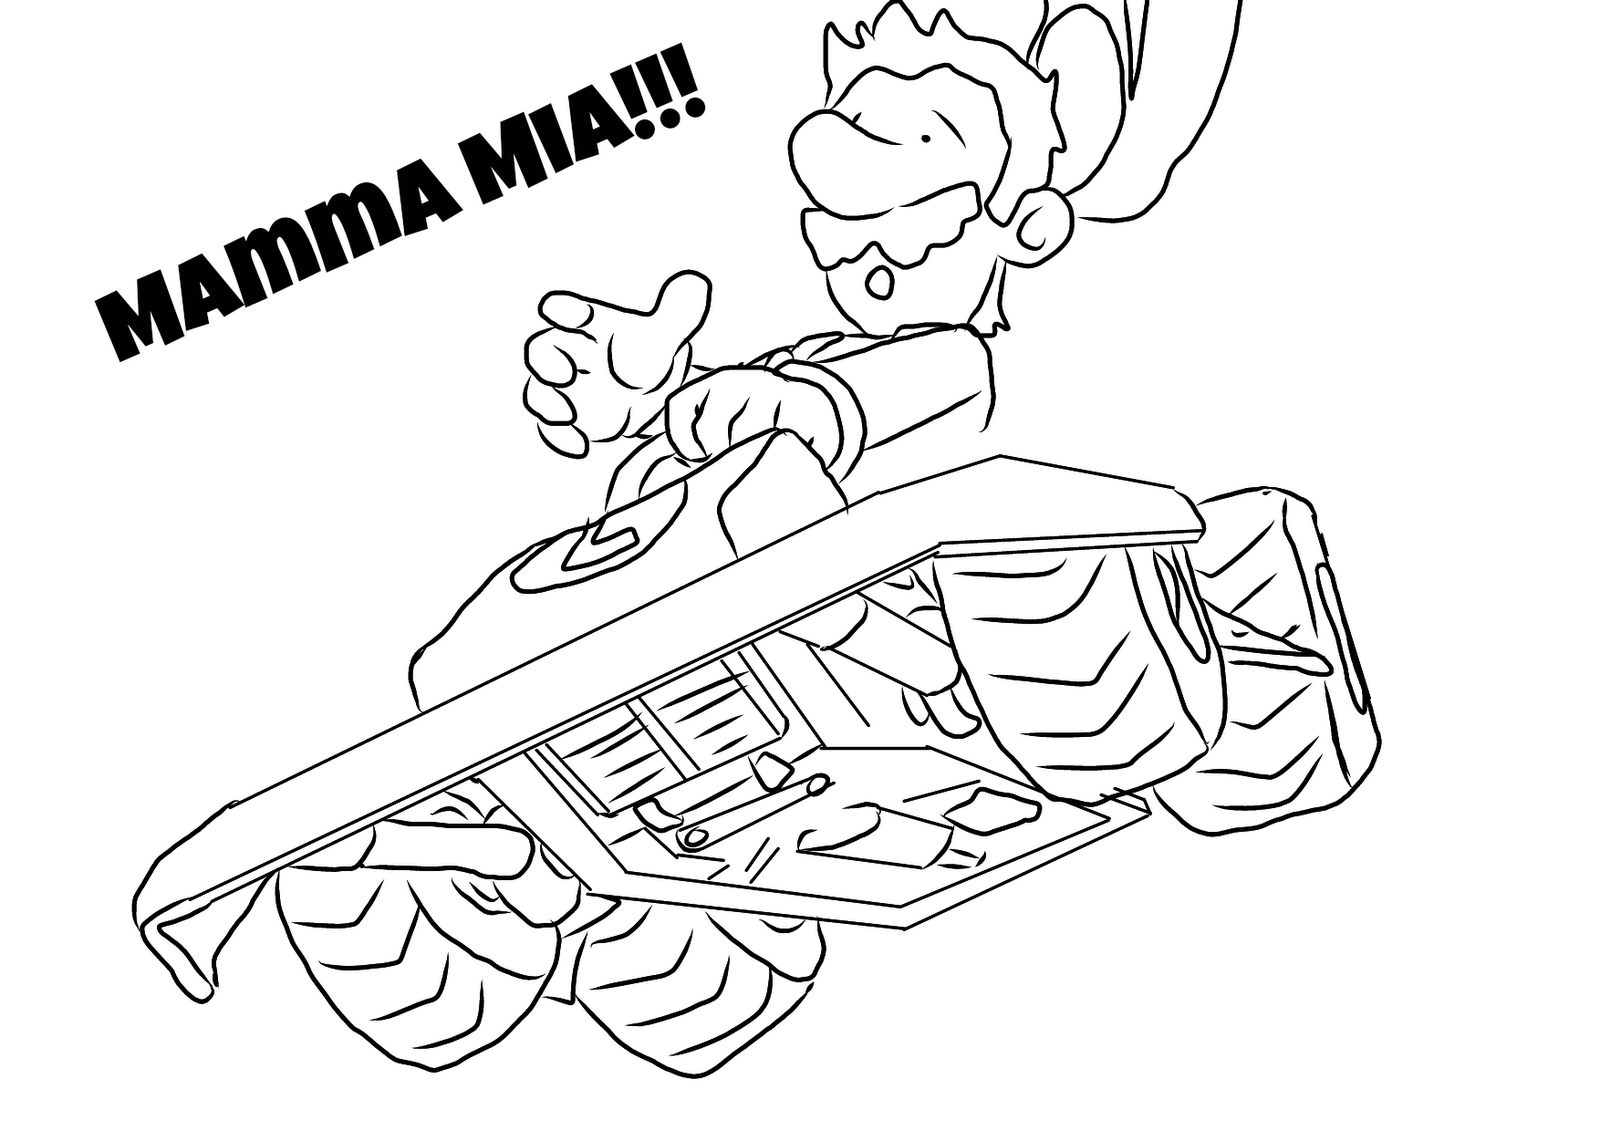 Favour in Fun: Mario Kart Colouring Pages